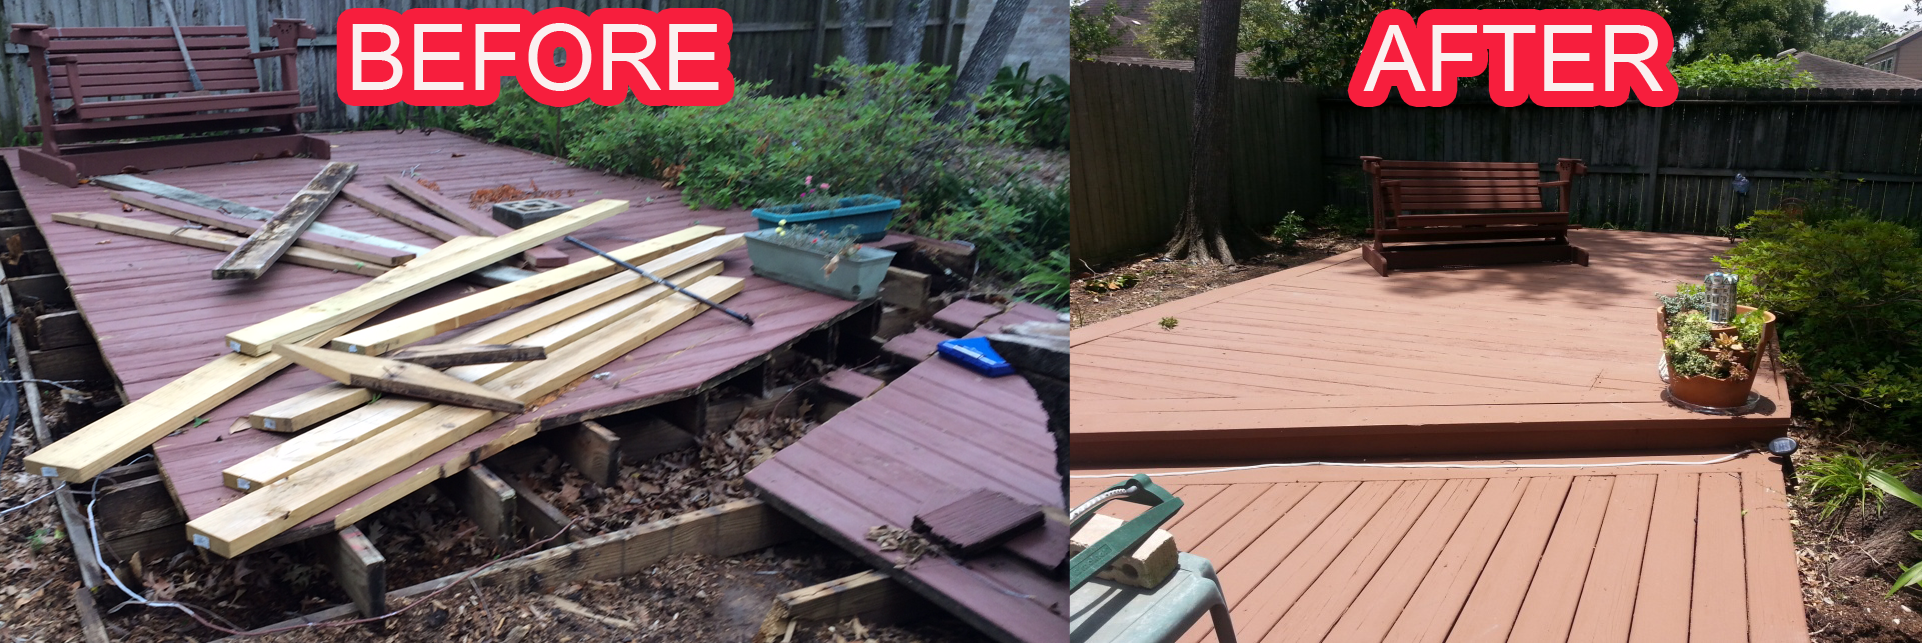 Deck Rebuild Houston Before After